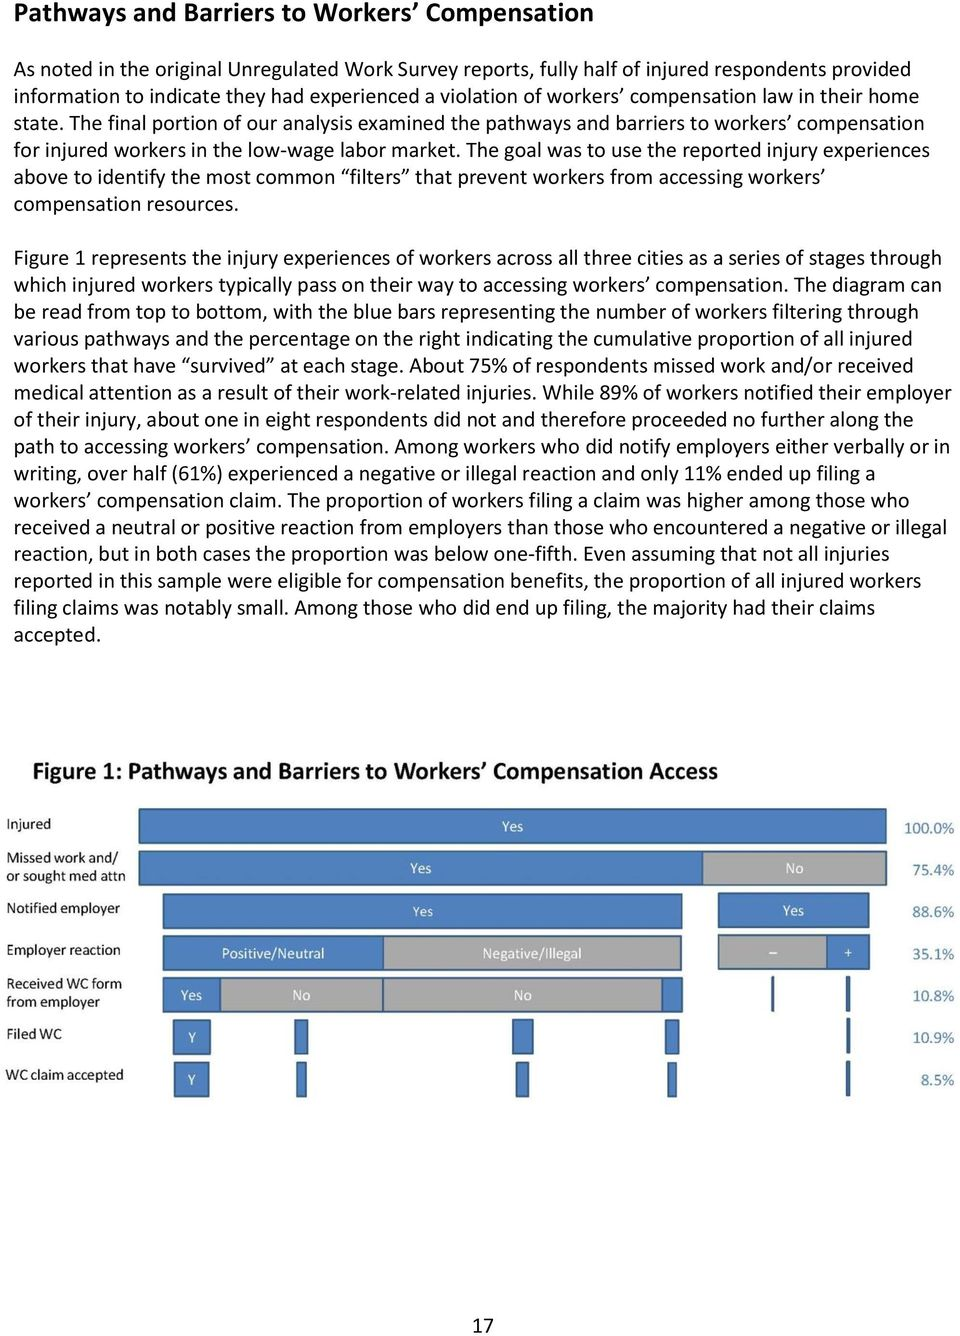 The final portion of our analysis examined the pathways and barriers to workers compensation for injured workers in the low-wage labor market.